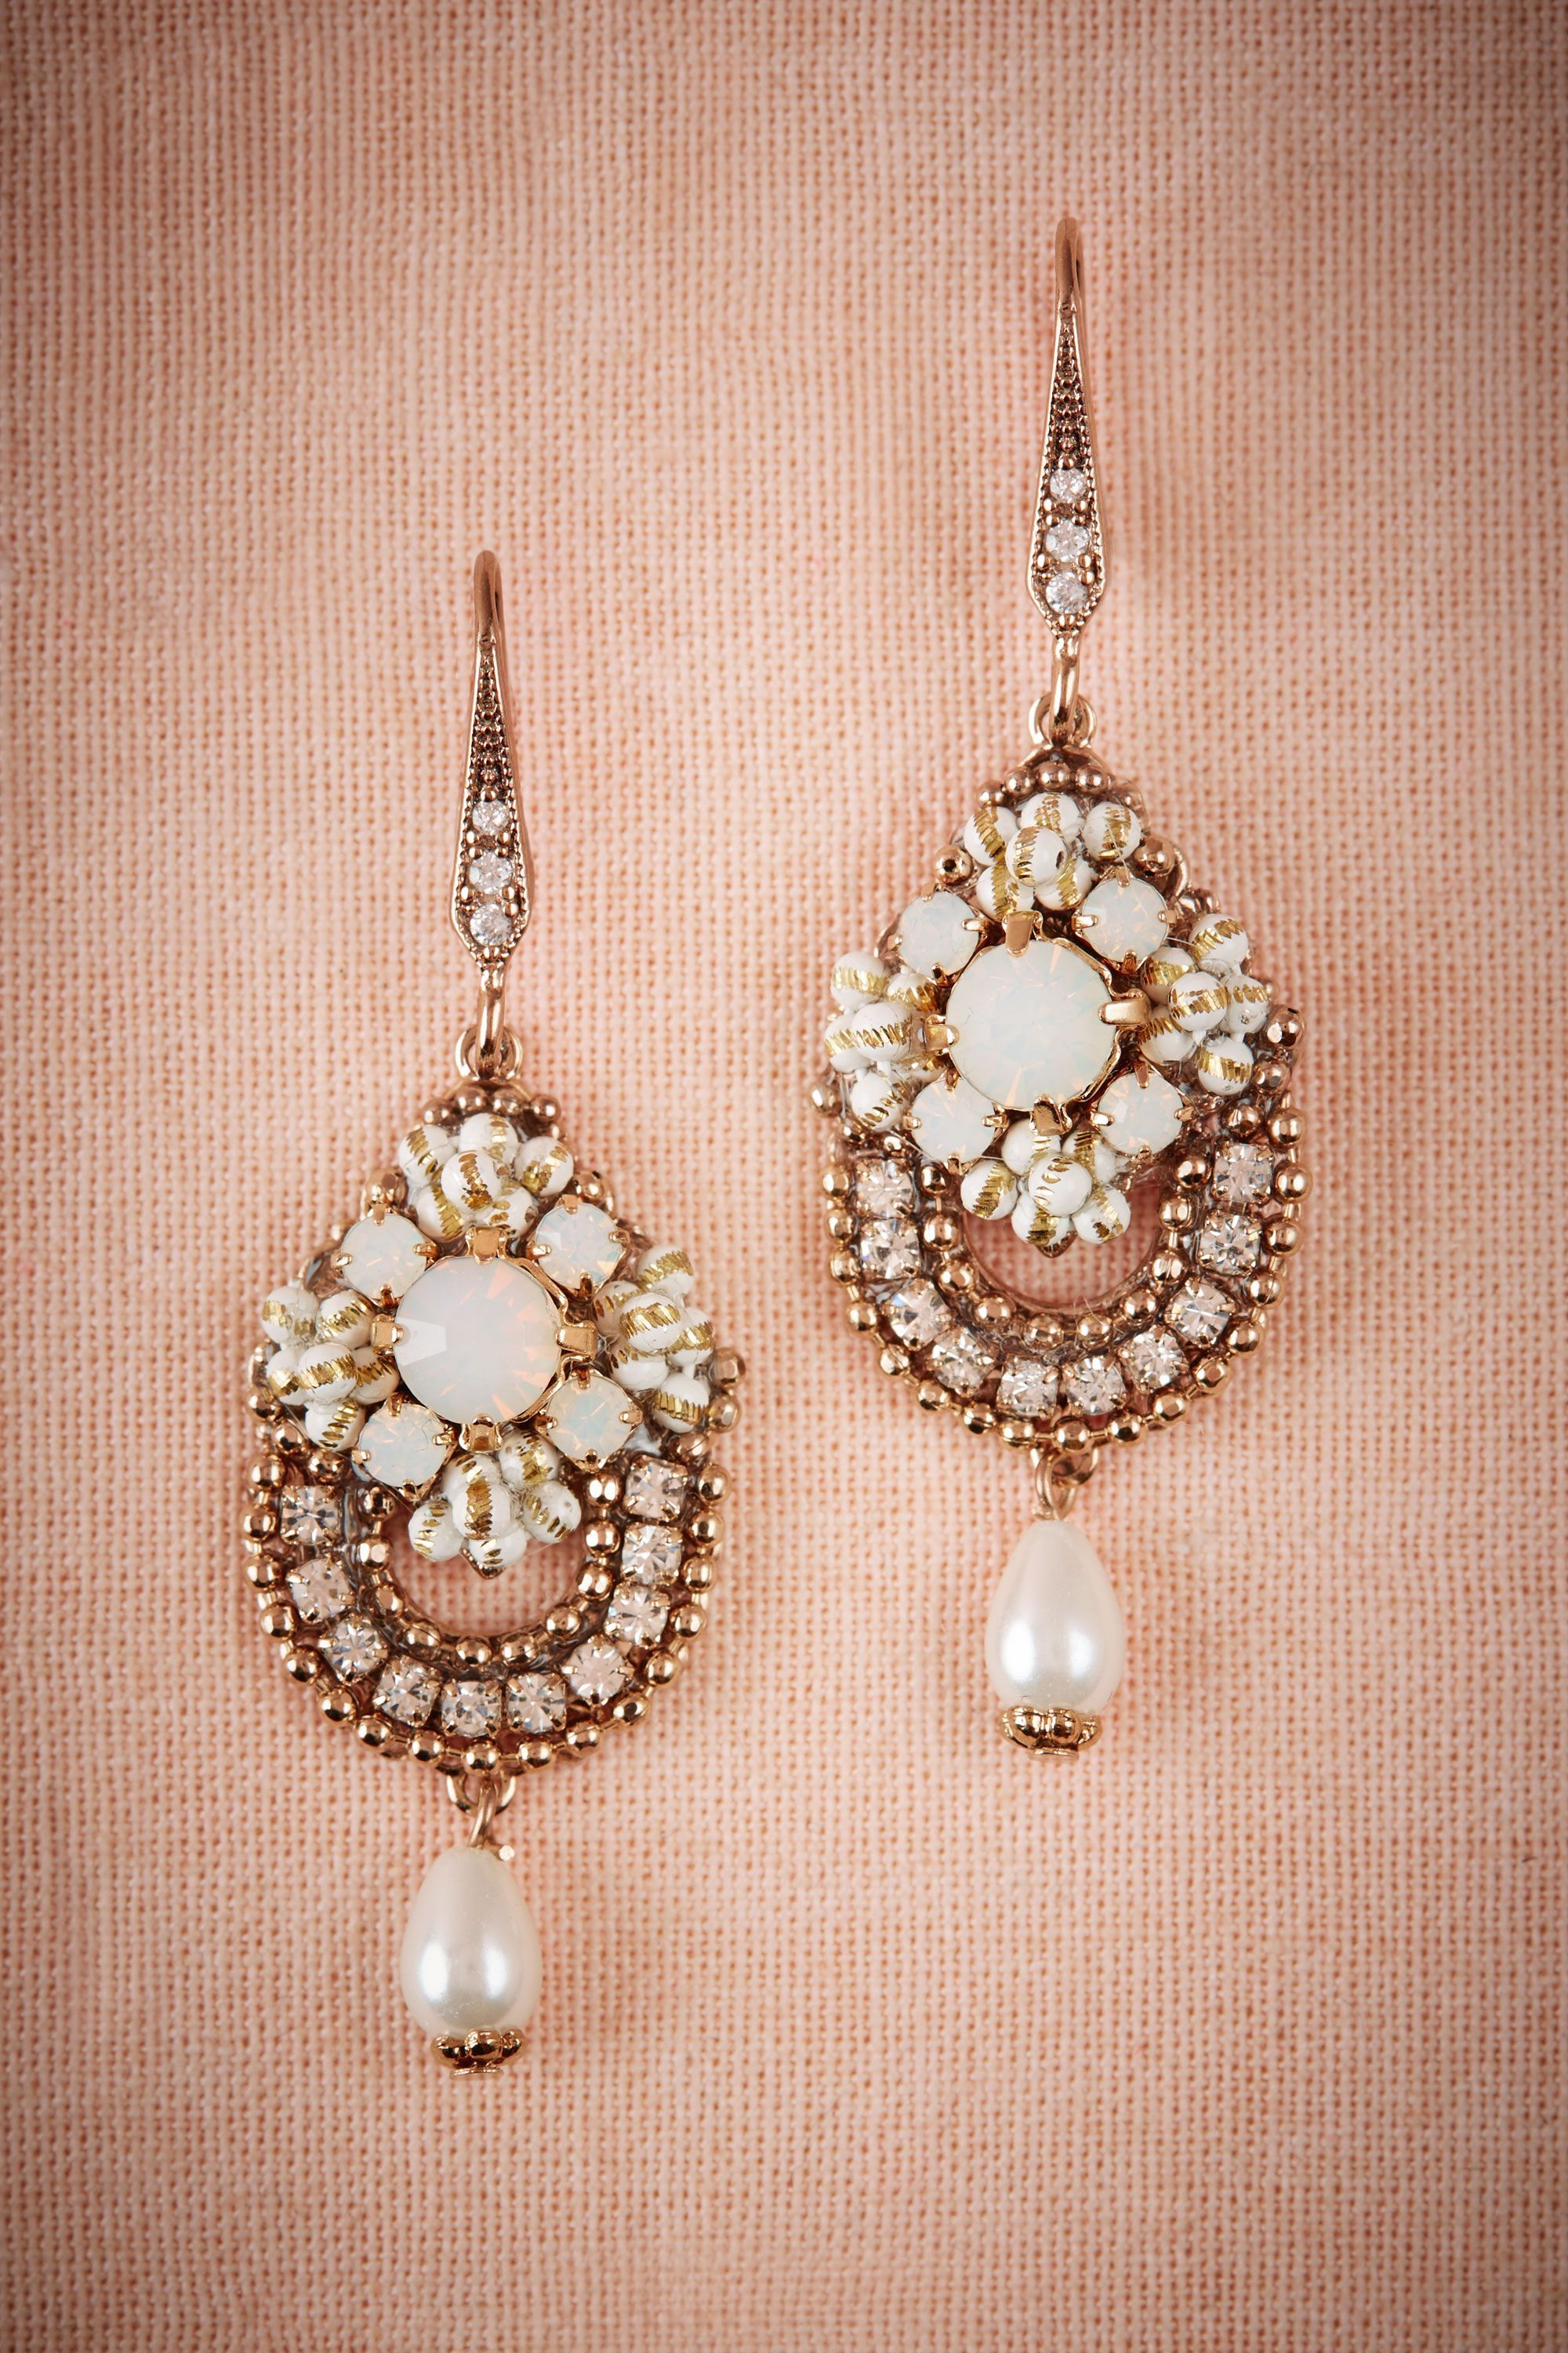 Vintage Inspired Bridal Jewelry Influenced By 1930s Design Crystal And Pearl Drop Earrings Concertina Chandeliers From Bhldn